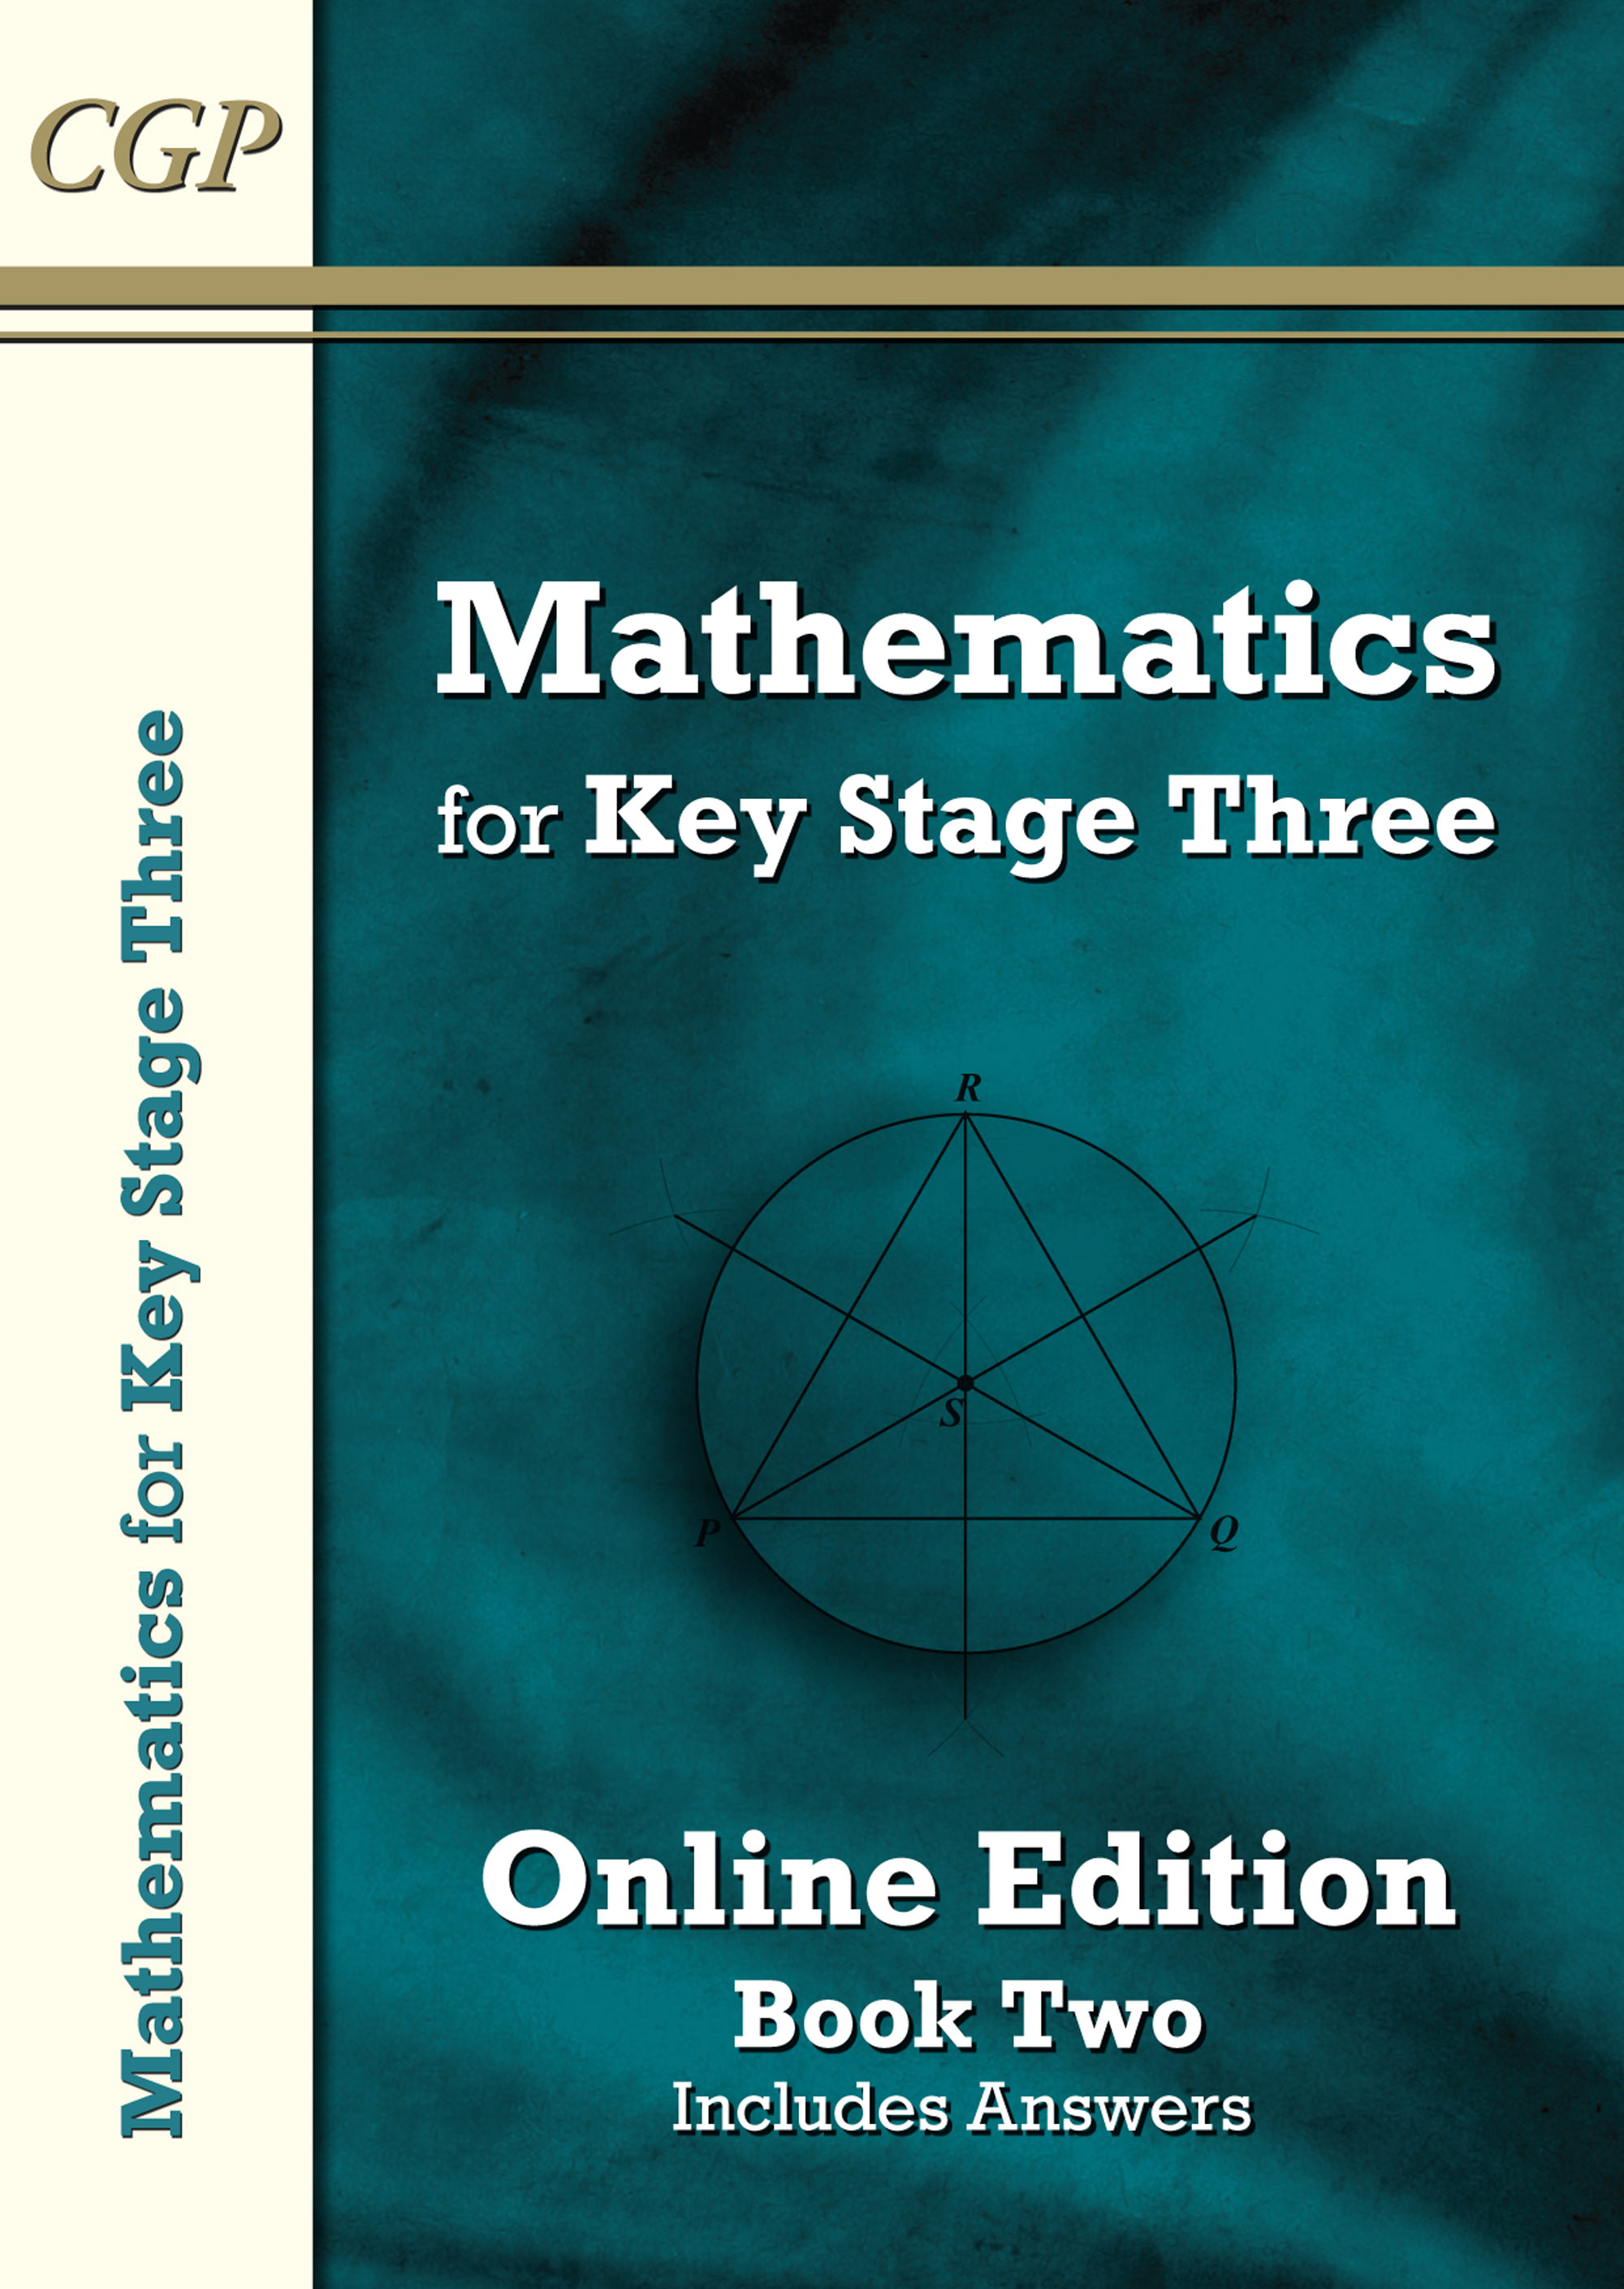 M2N31D - KS3 Maths Textbook 2: Student Online Edition (with answers)